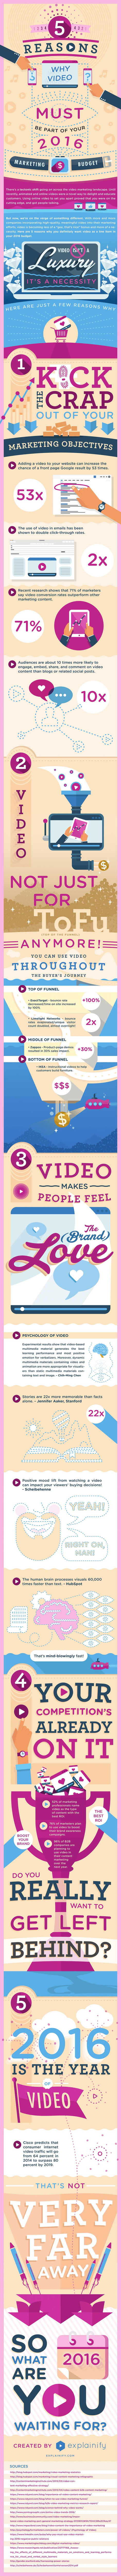 5 Reasons Why Video Must Be Part Of Your 2016 Marketing Budget - #infographic